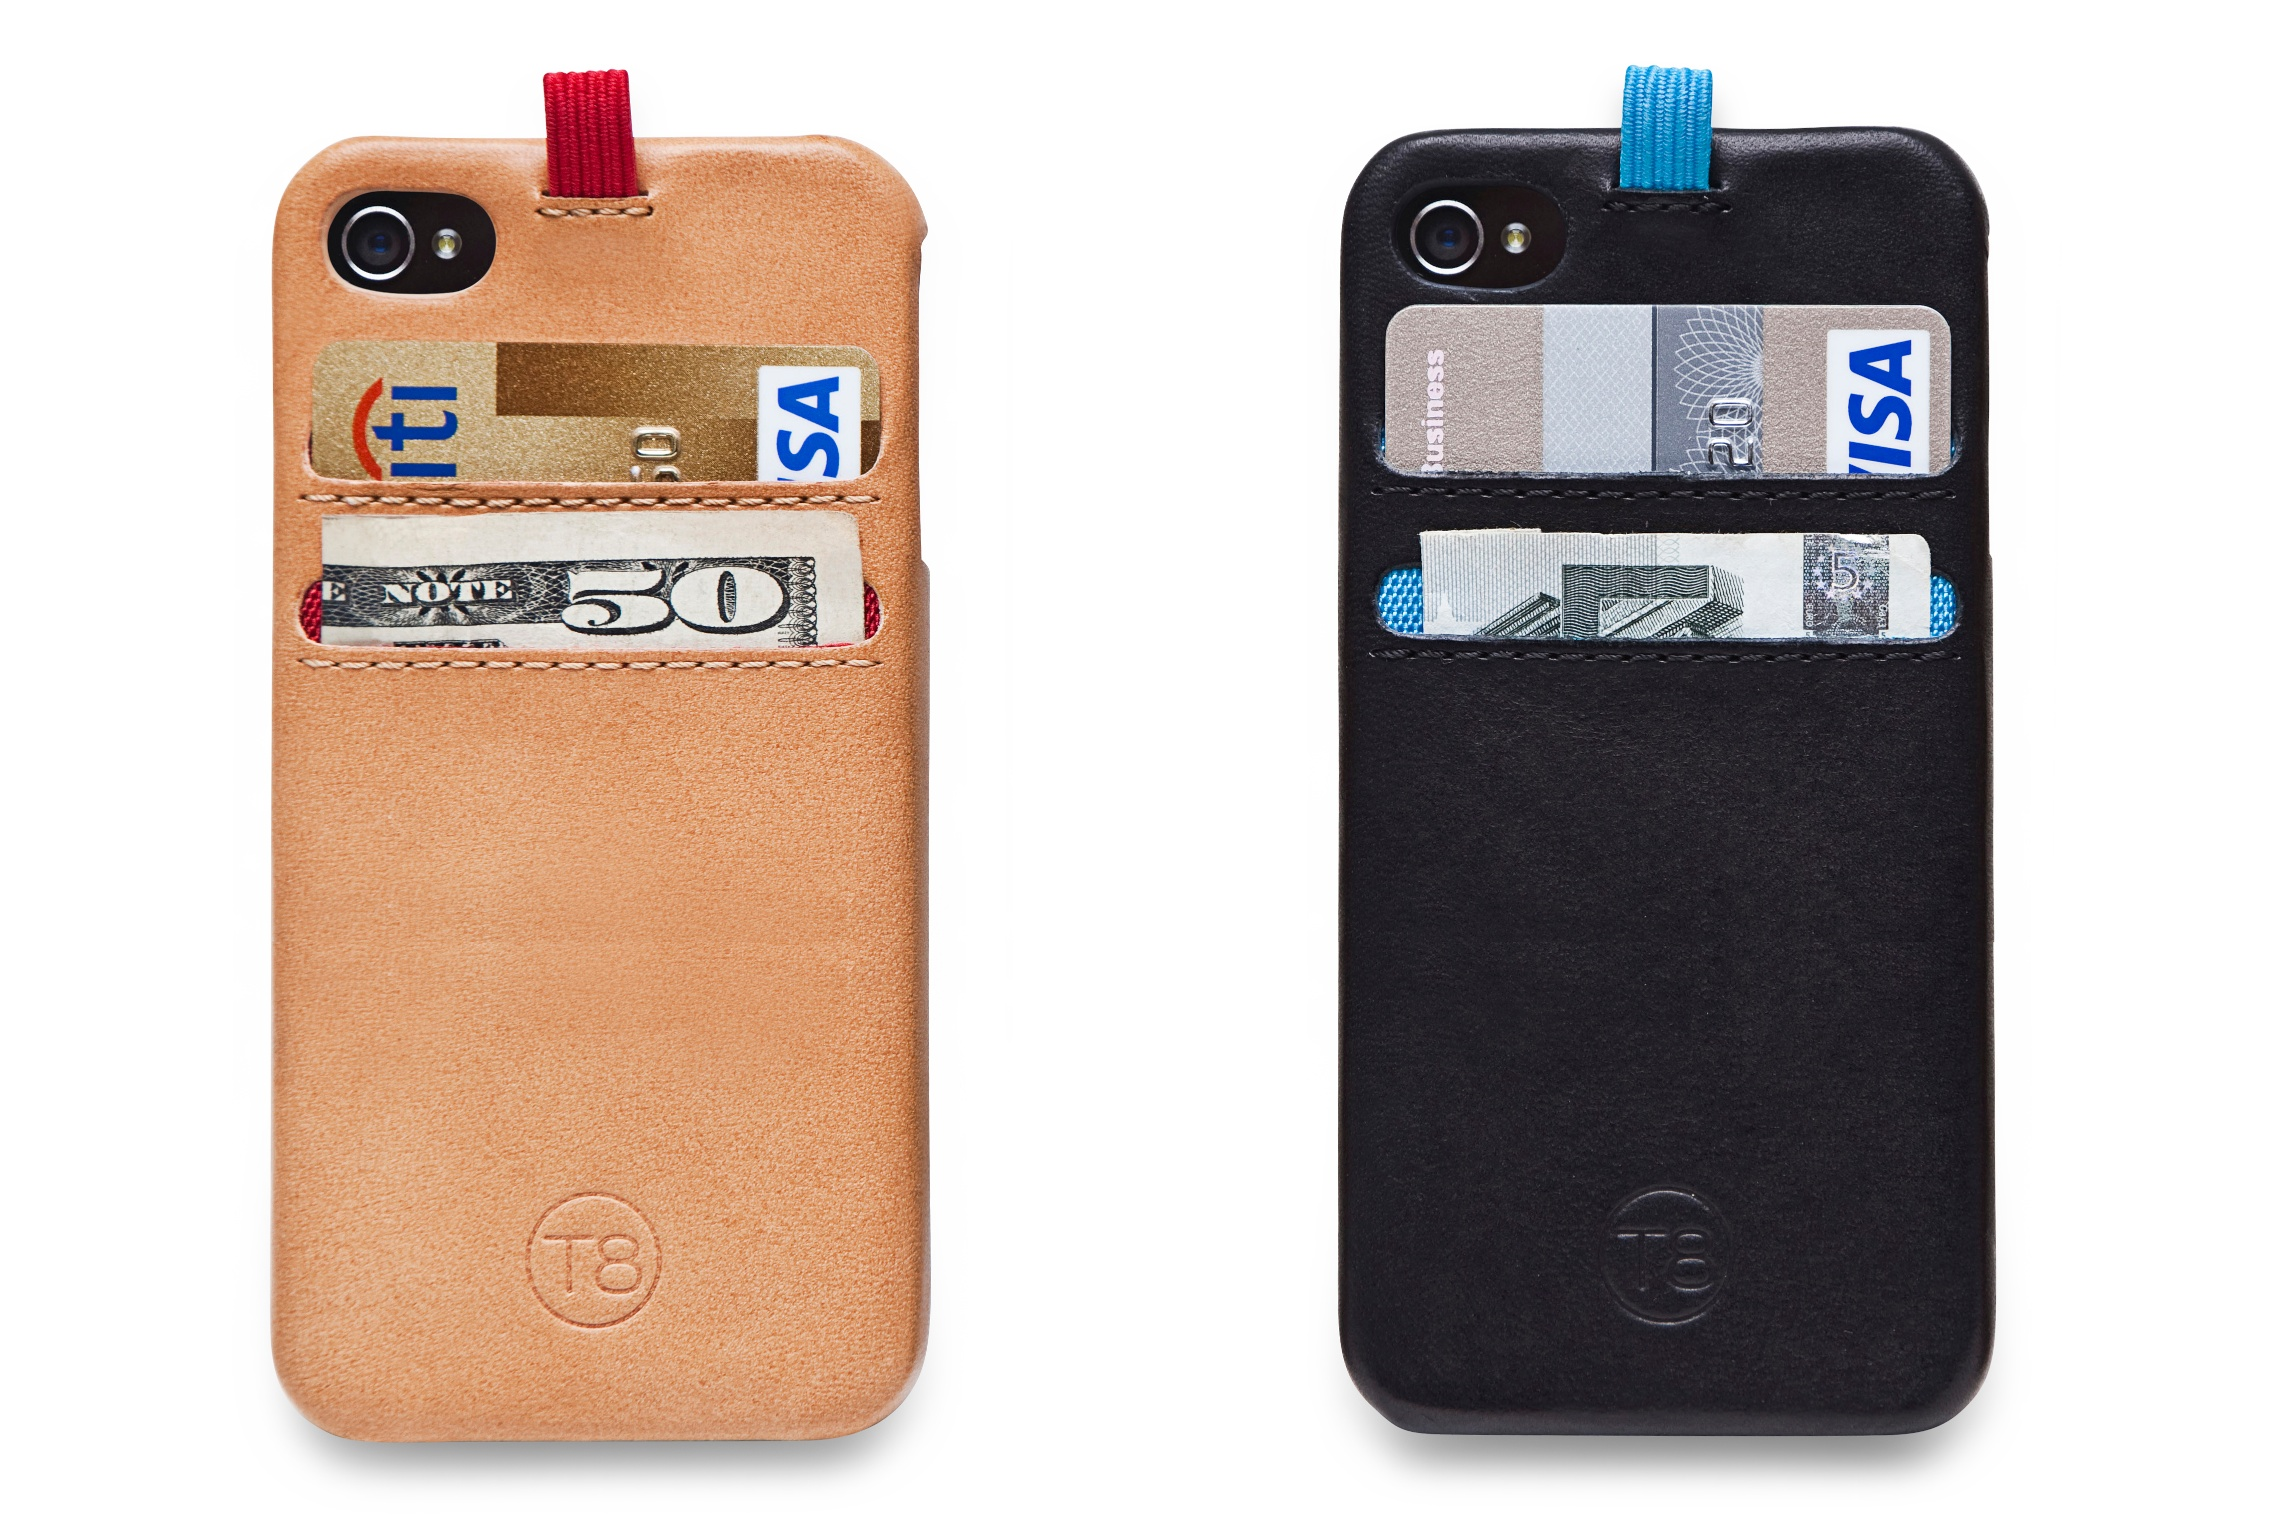 best iphone 5s wallet case no nfc no worries t8 ships wallet for iphone 5s 16657